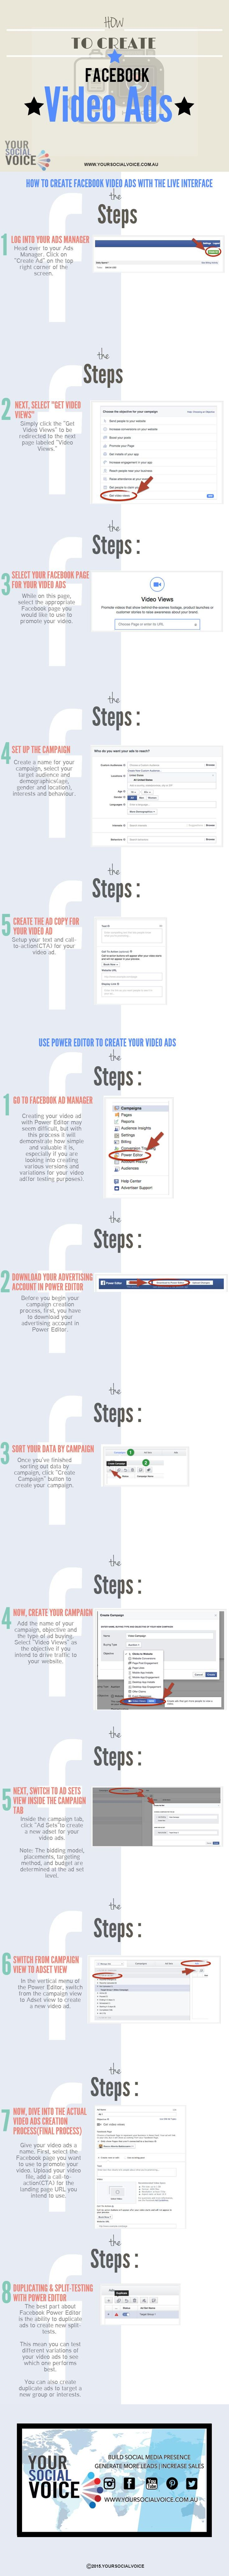 How To Create Facebook Video Ads.